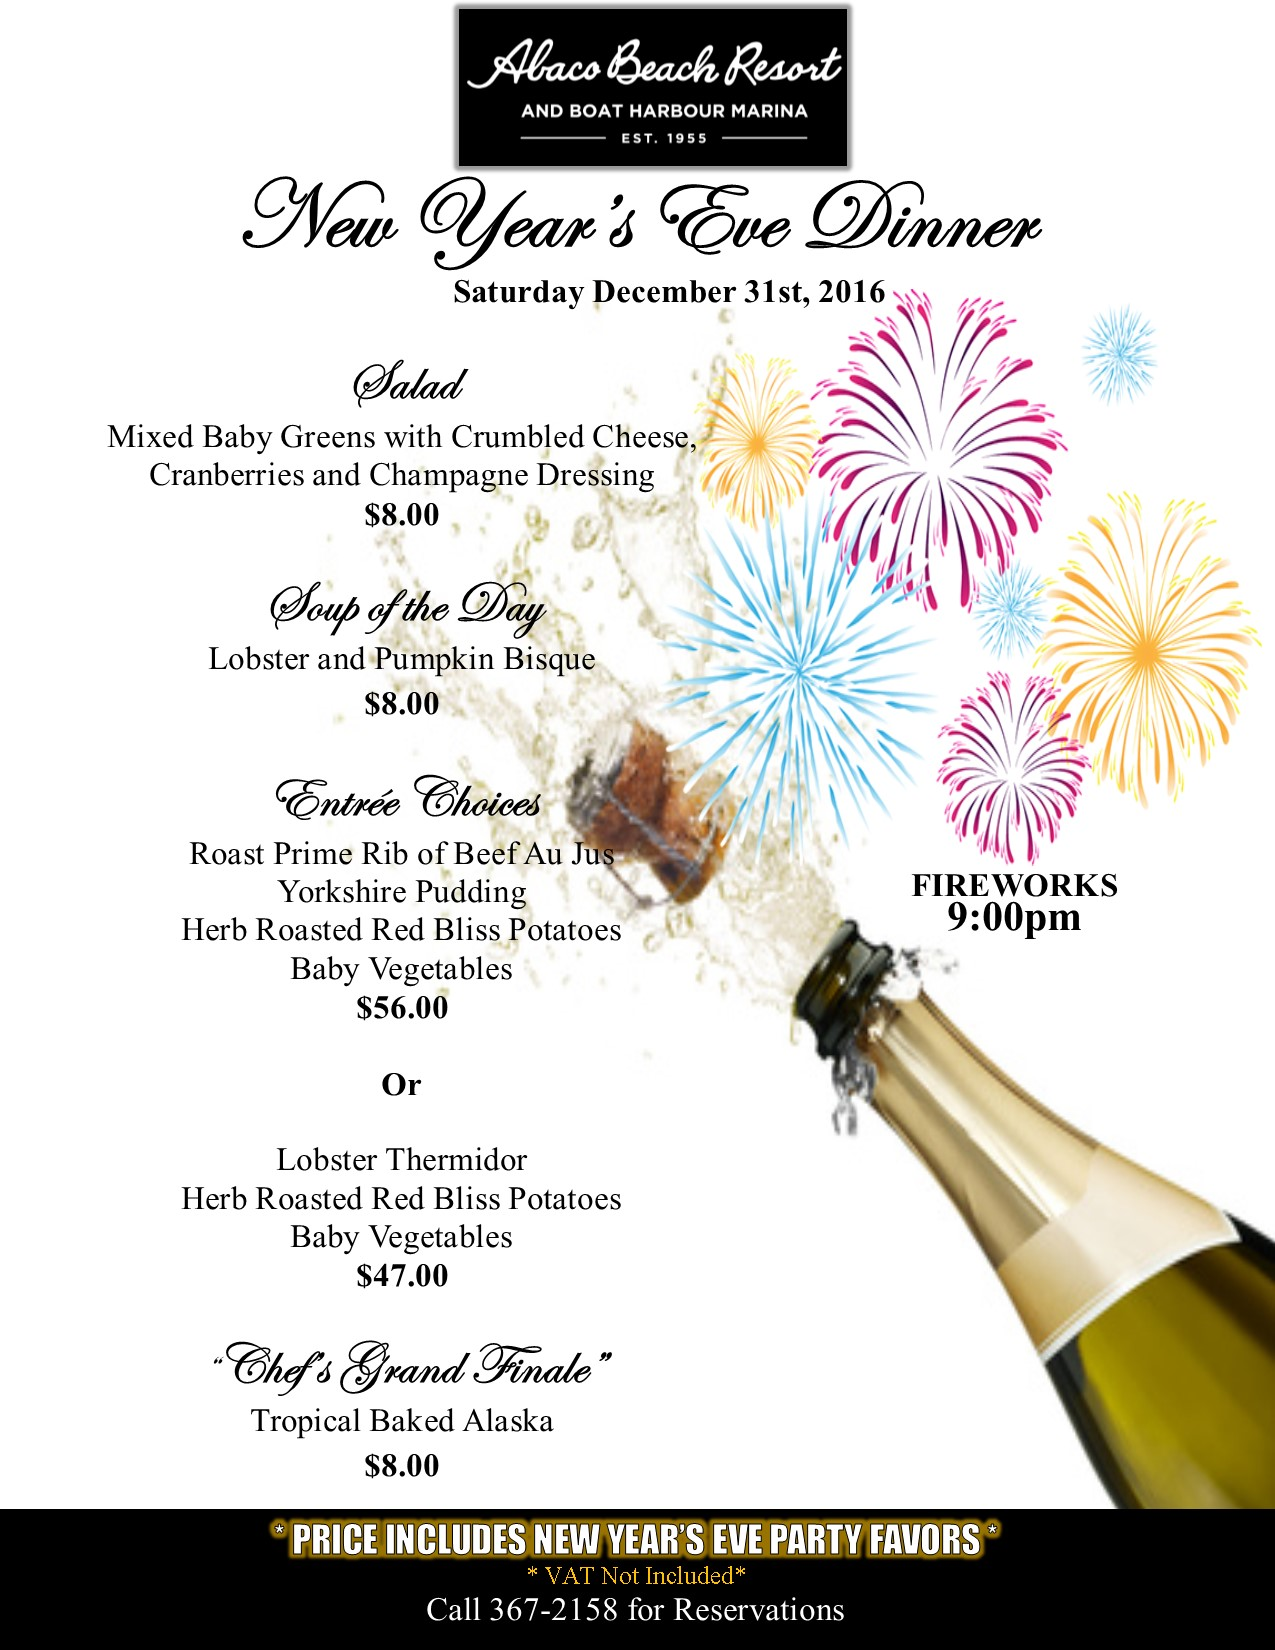 Abacos New Year's fireworks and Dinner | Bahamas Out Islands NYE parties